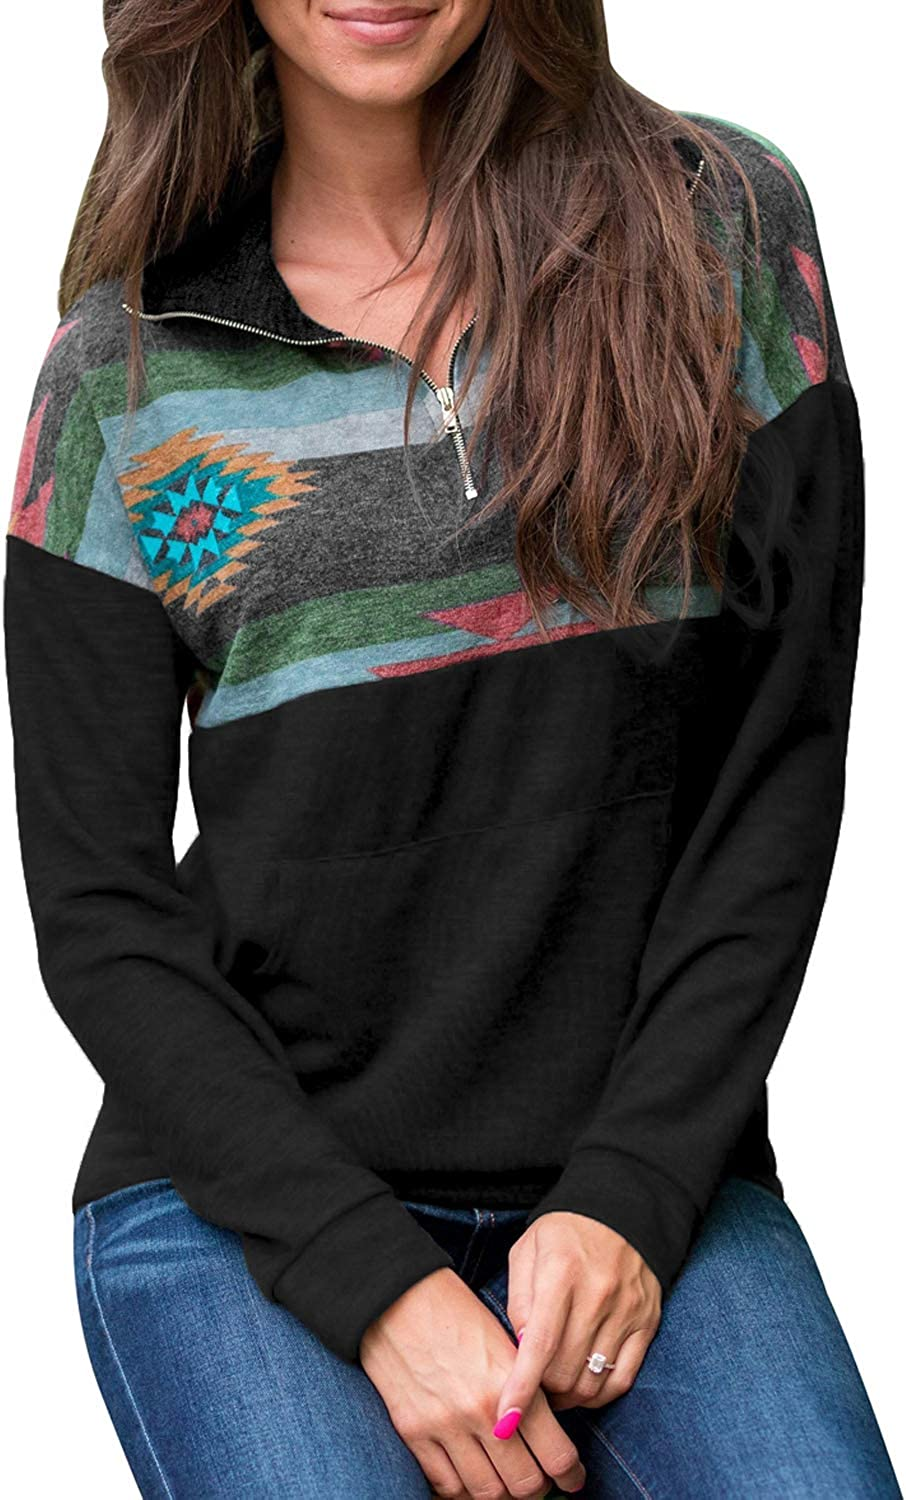 HOTAPEI Womens 1/4 Zipper Color Block Sweatshirts Casual Long Sleeve Aztec Printed Pullover Tops with Pockets S-XXL